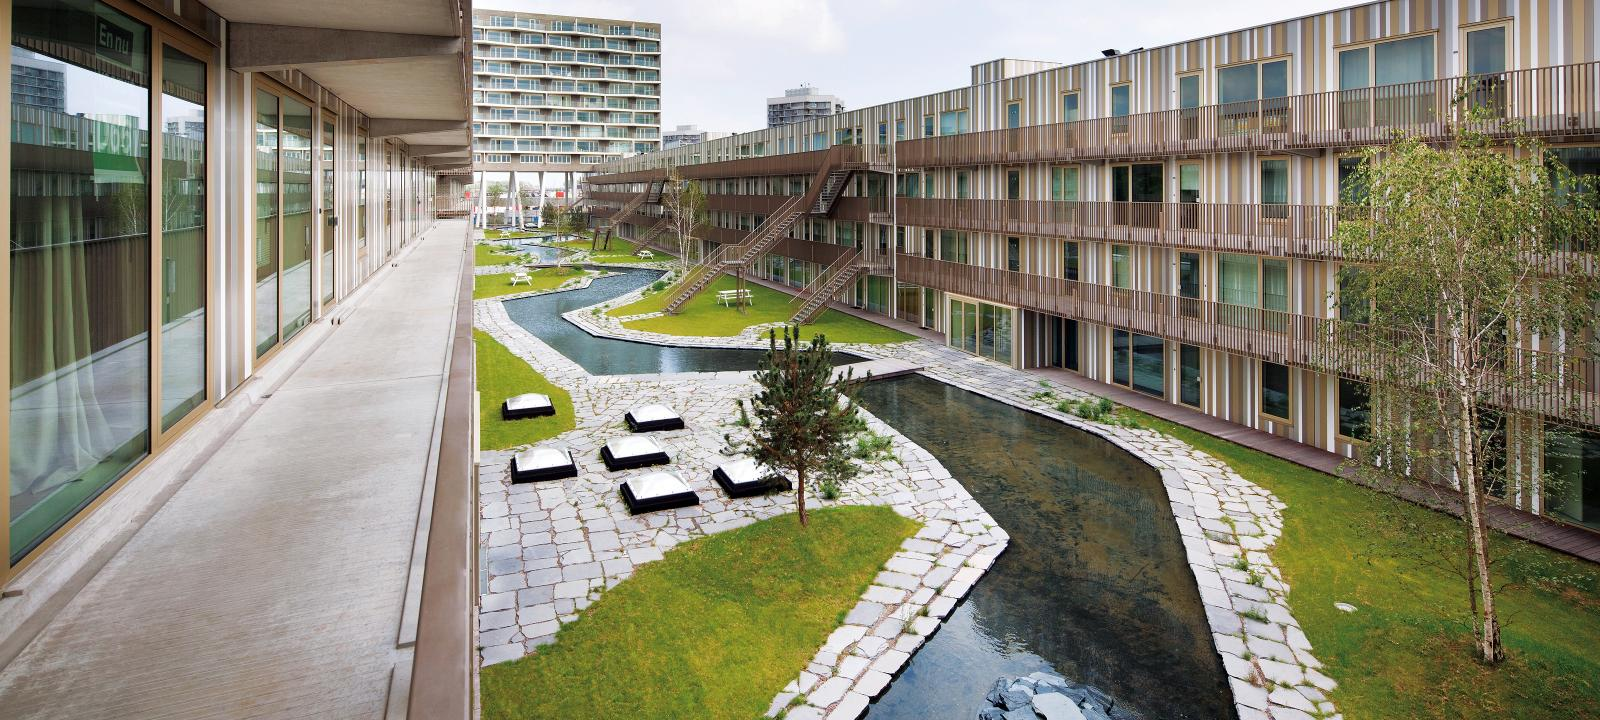 Water course and lawn with small trees, surrounded by apartment buildings